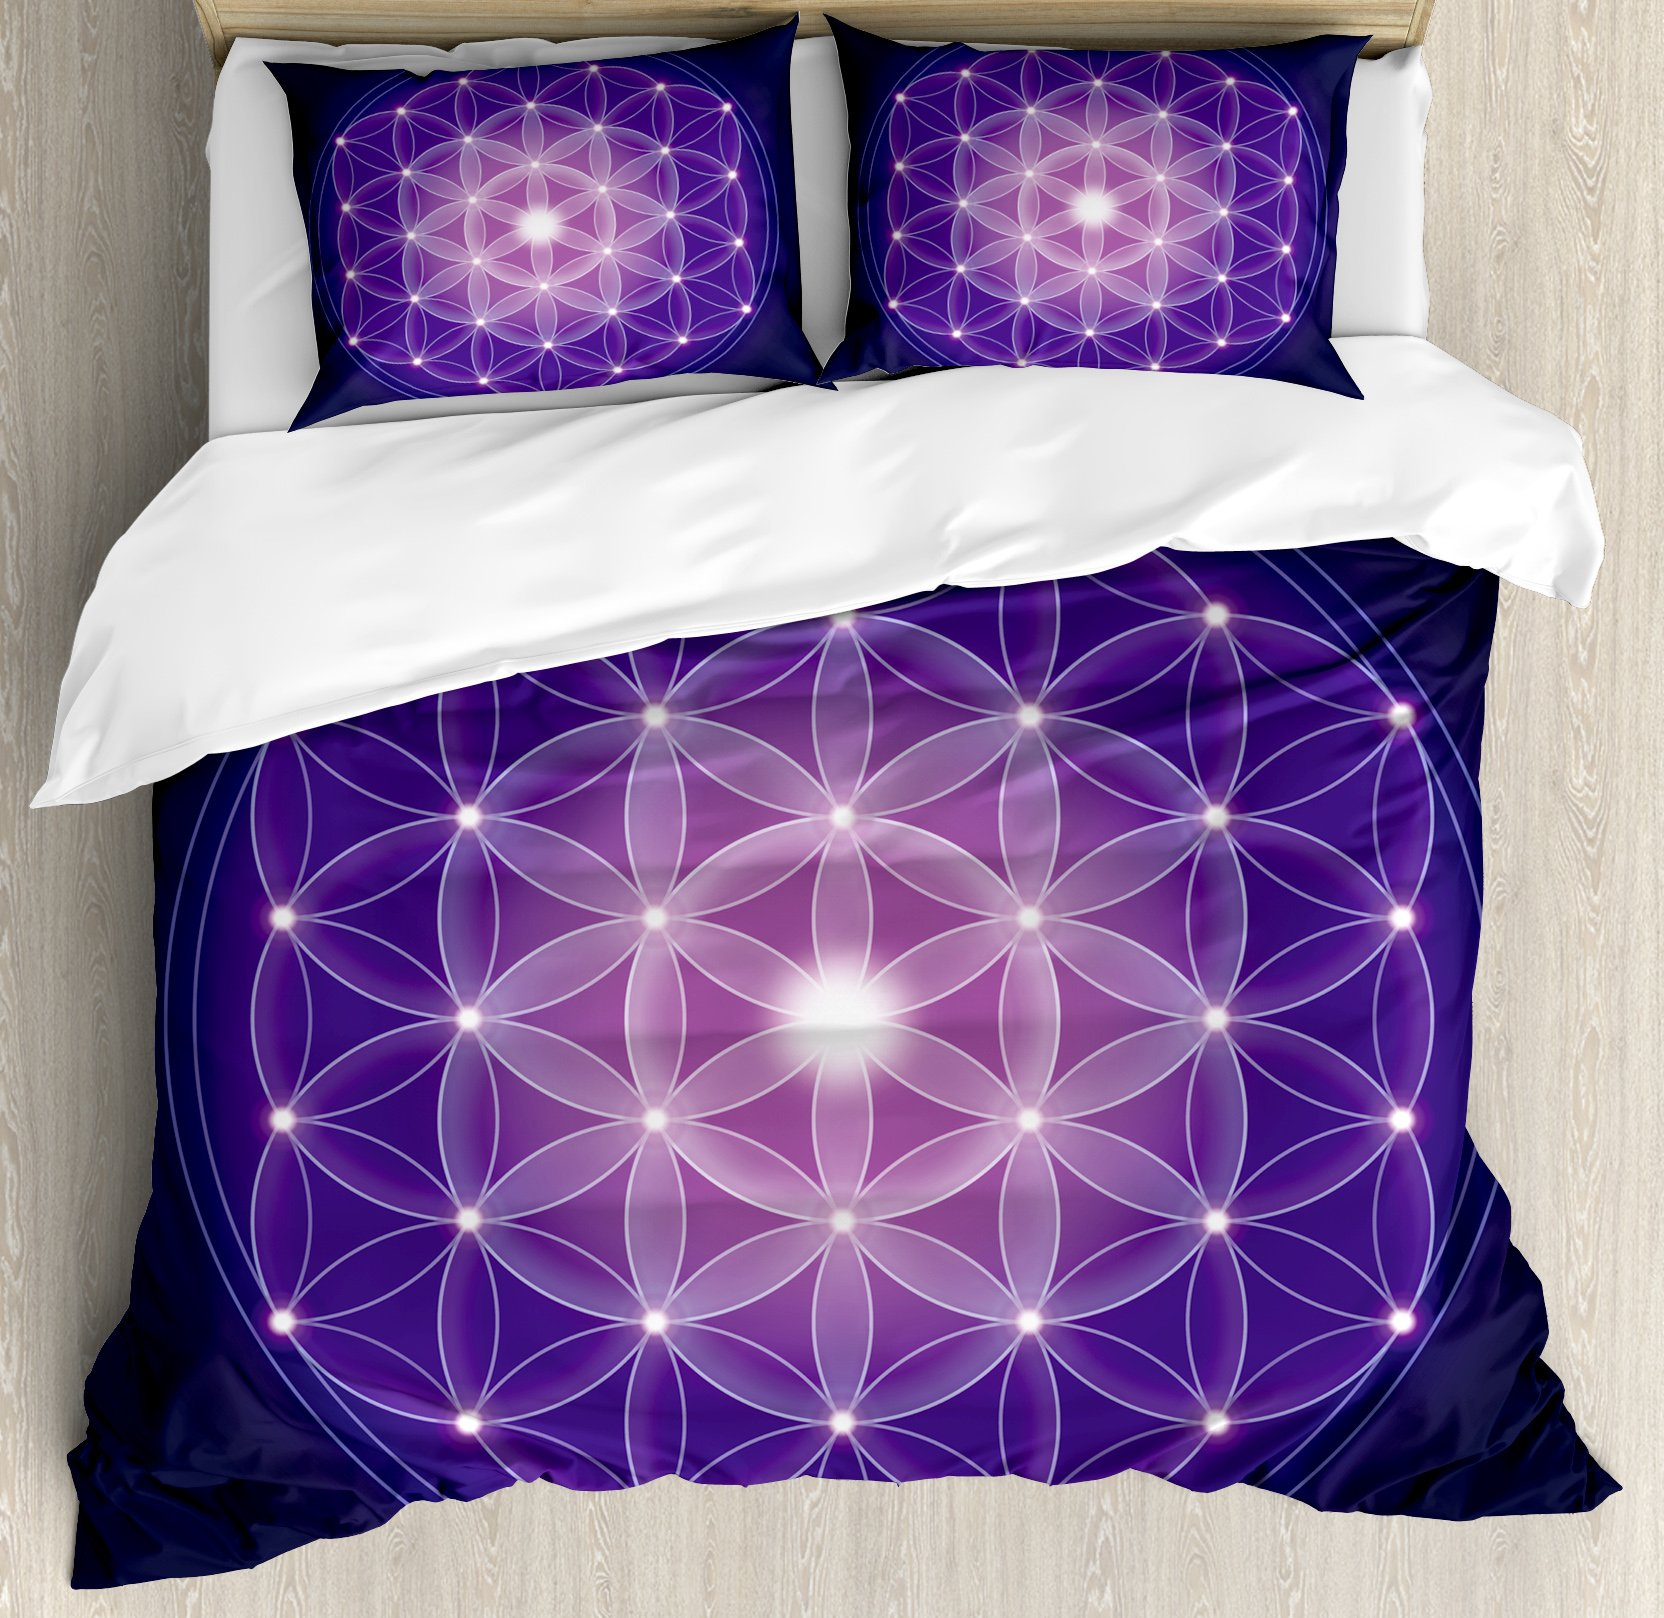 Ambesonne Dark Blue Duvet Cover Set King Size by, Flower of Life with Stars Spiritual Symbol Sacred Geometry Ancient, Decorative 3 Piece Bedding Set with 2 Pillow Shams, Dark Blue Pink Purple by Ambesonne